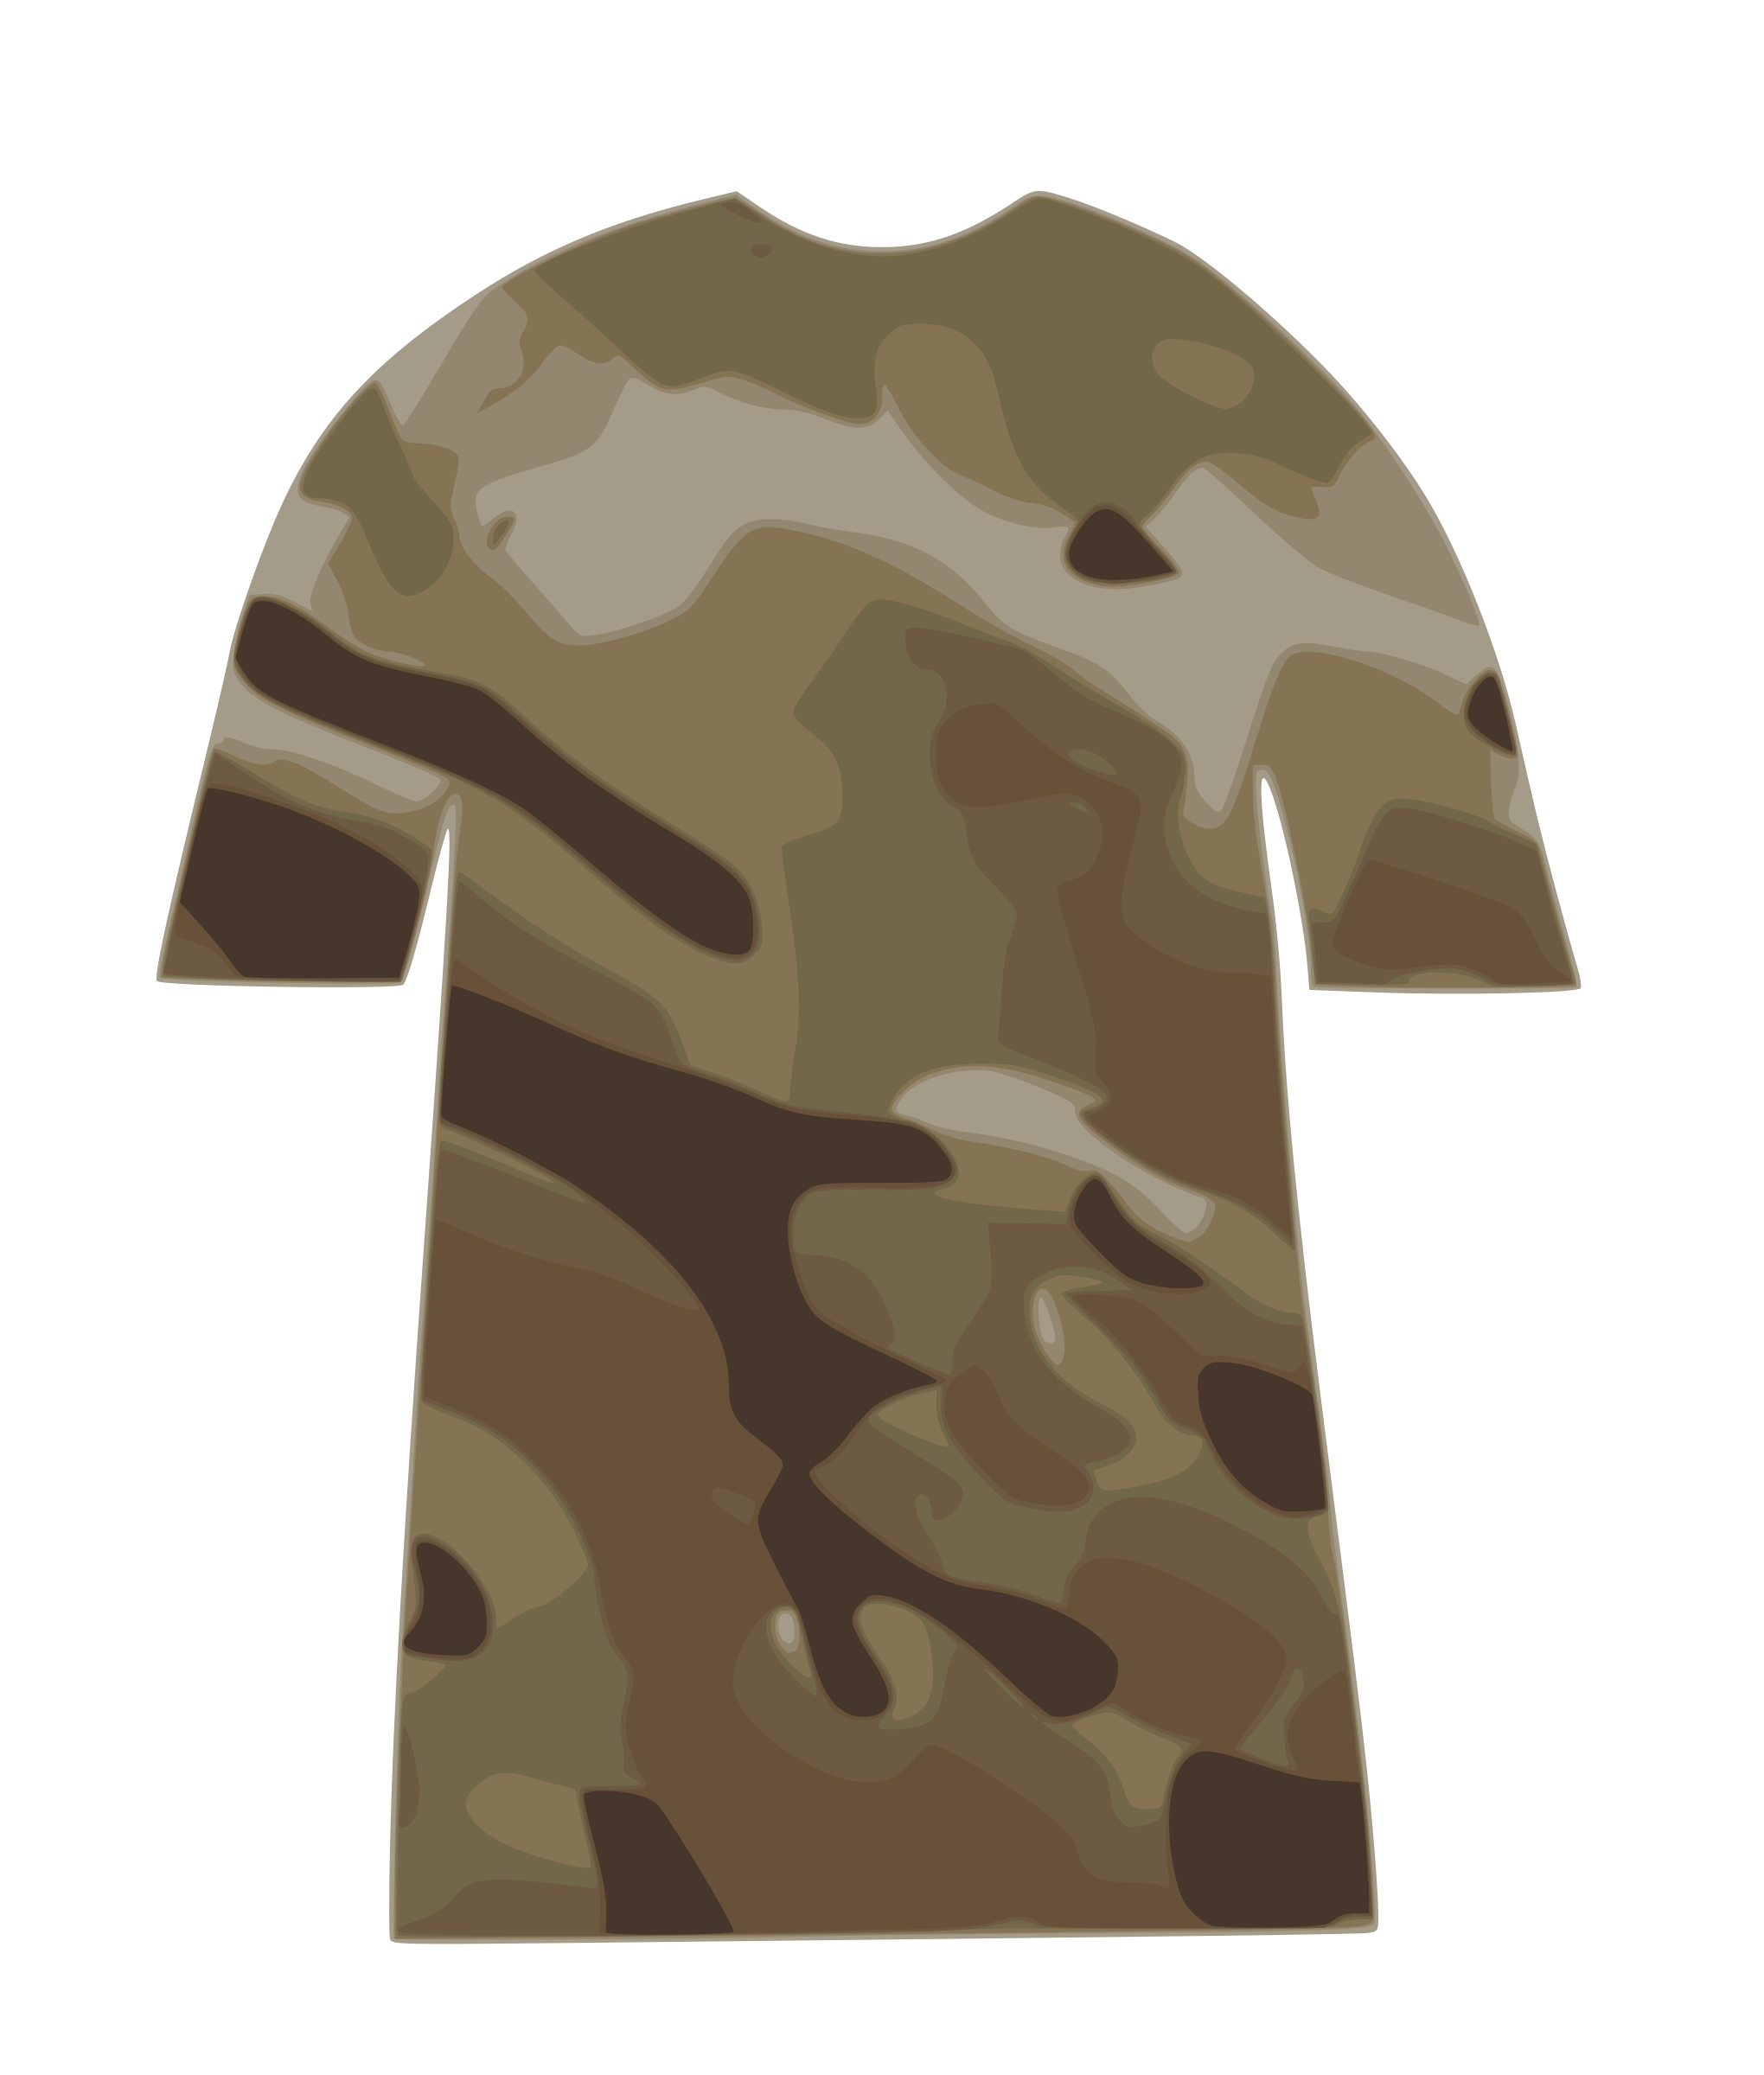 Camo cross clipart image library download 28+ Collection of Camo Shirt Clipart | High quality, free cliparts ... image library download